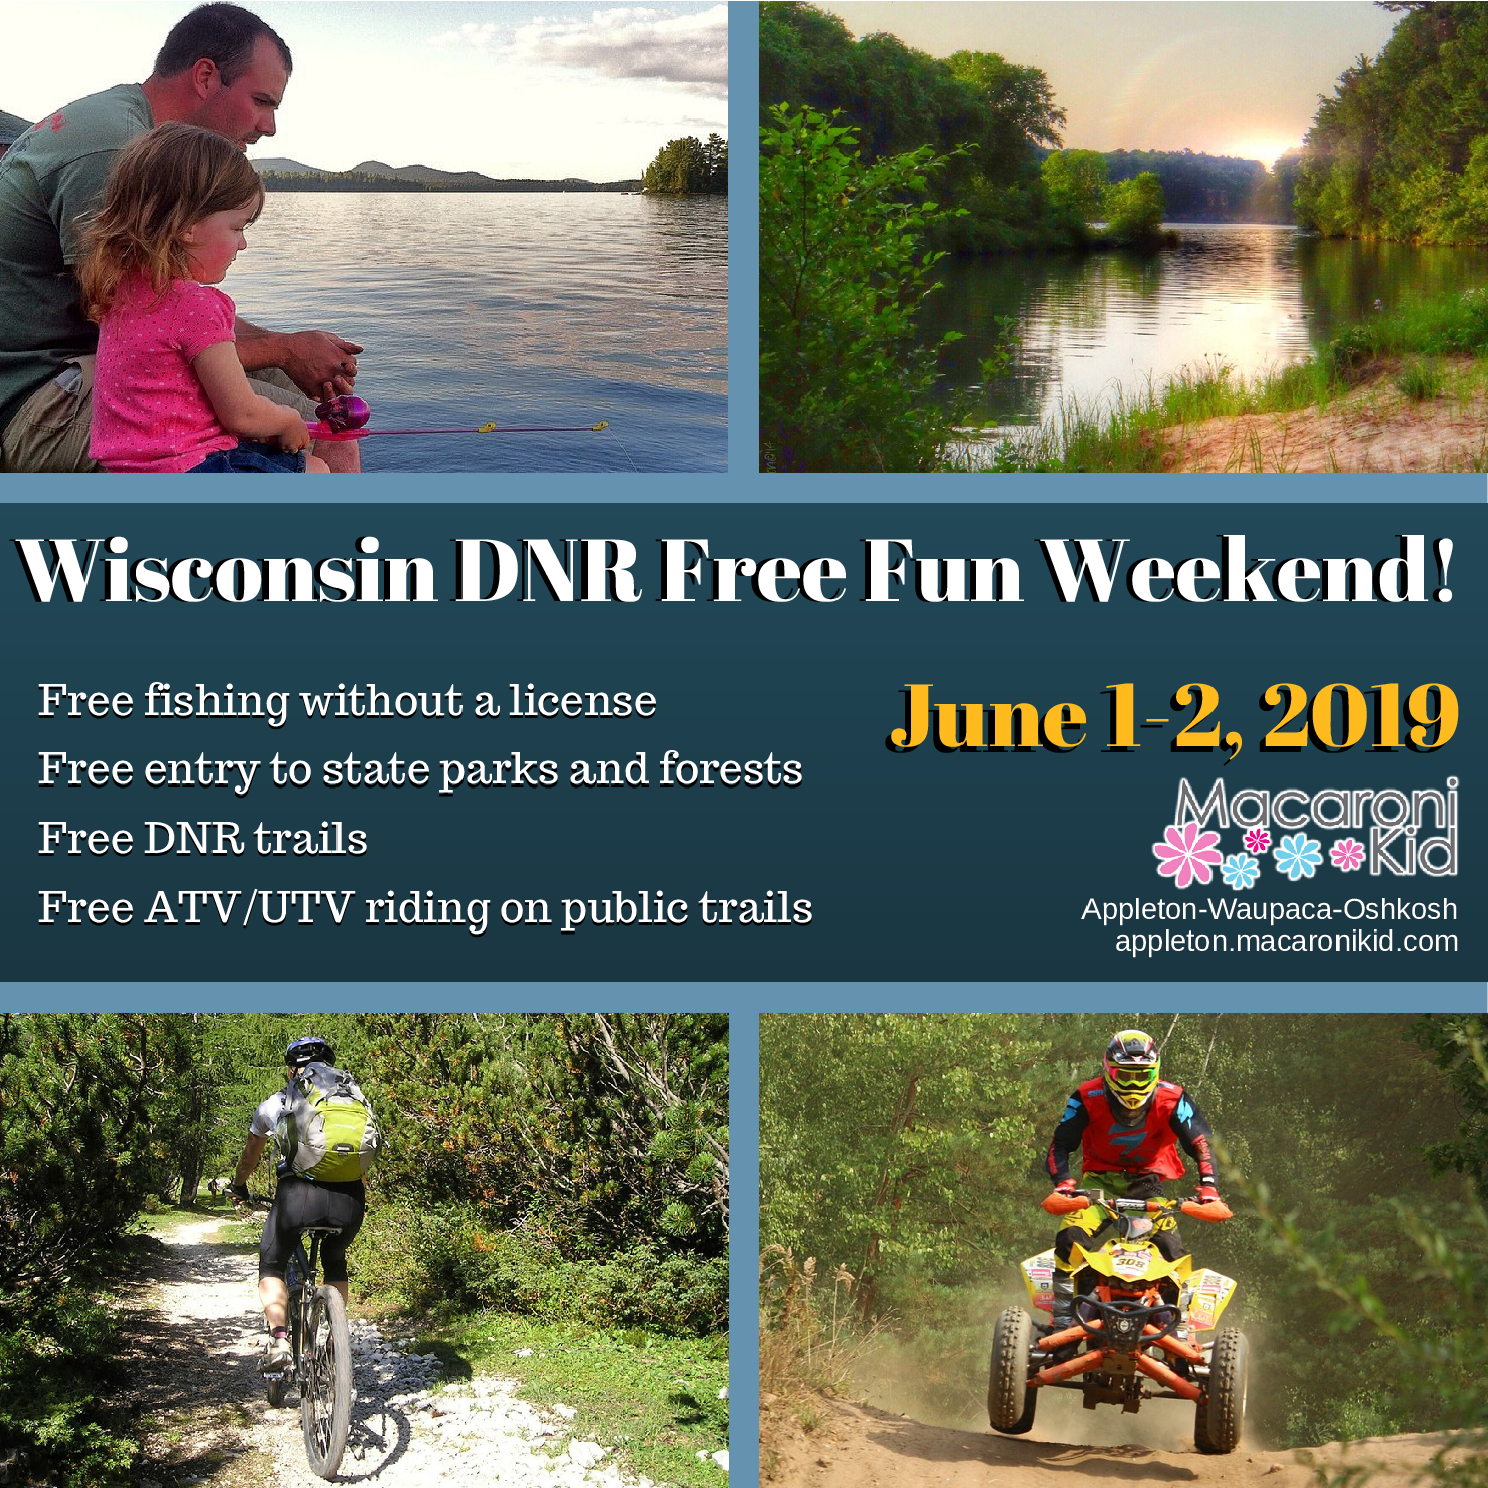 Wisconsin DNR Free Fun Weekend: Find Your Family Fun Outdoors!